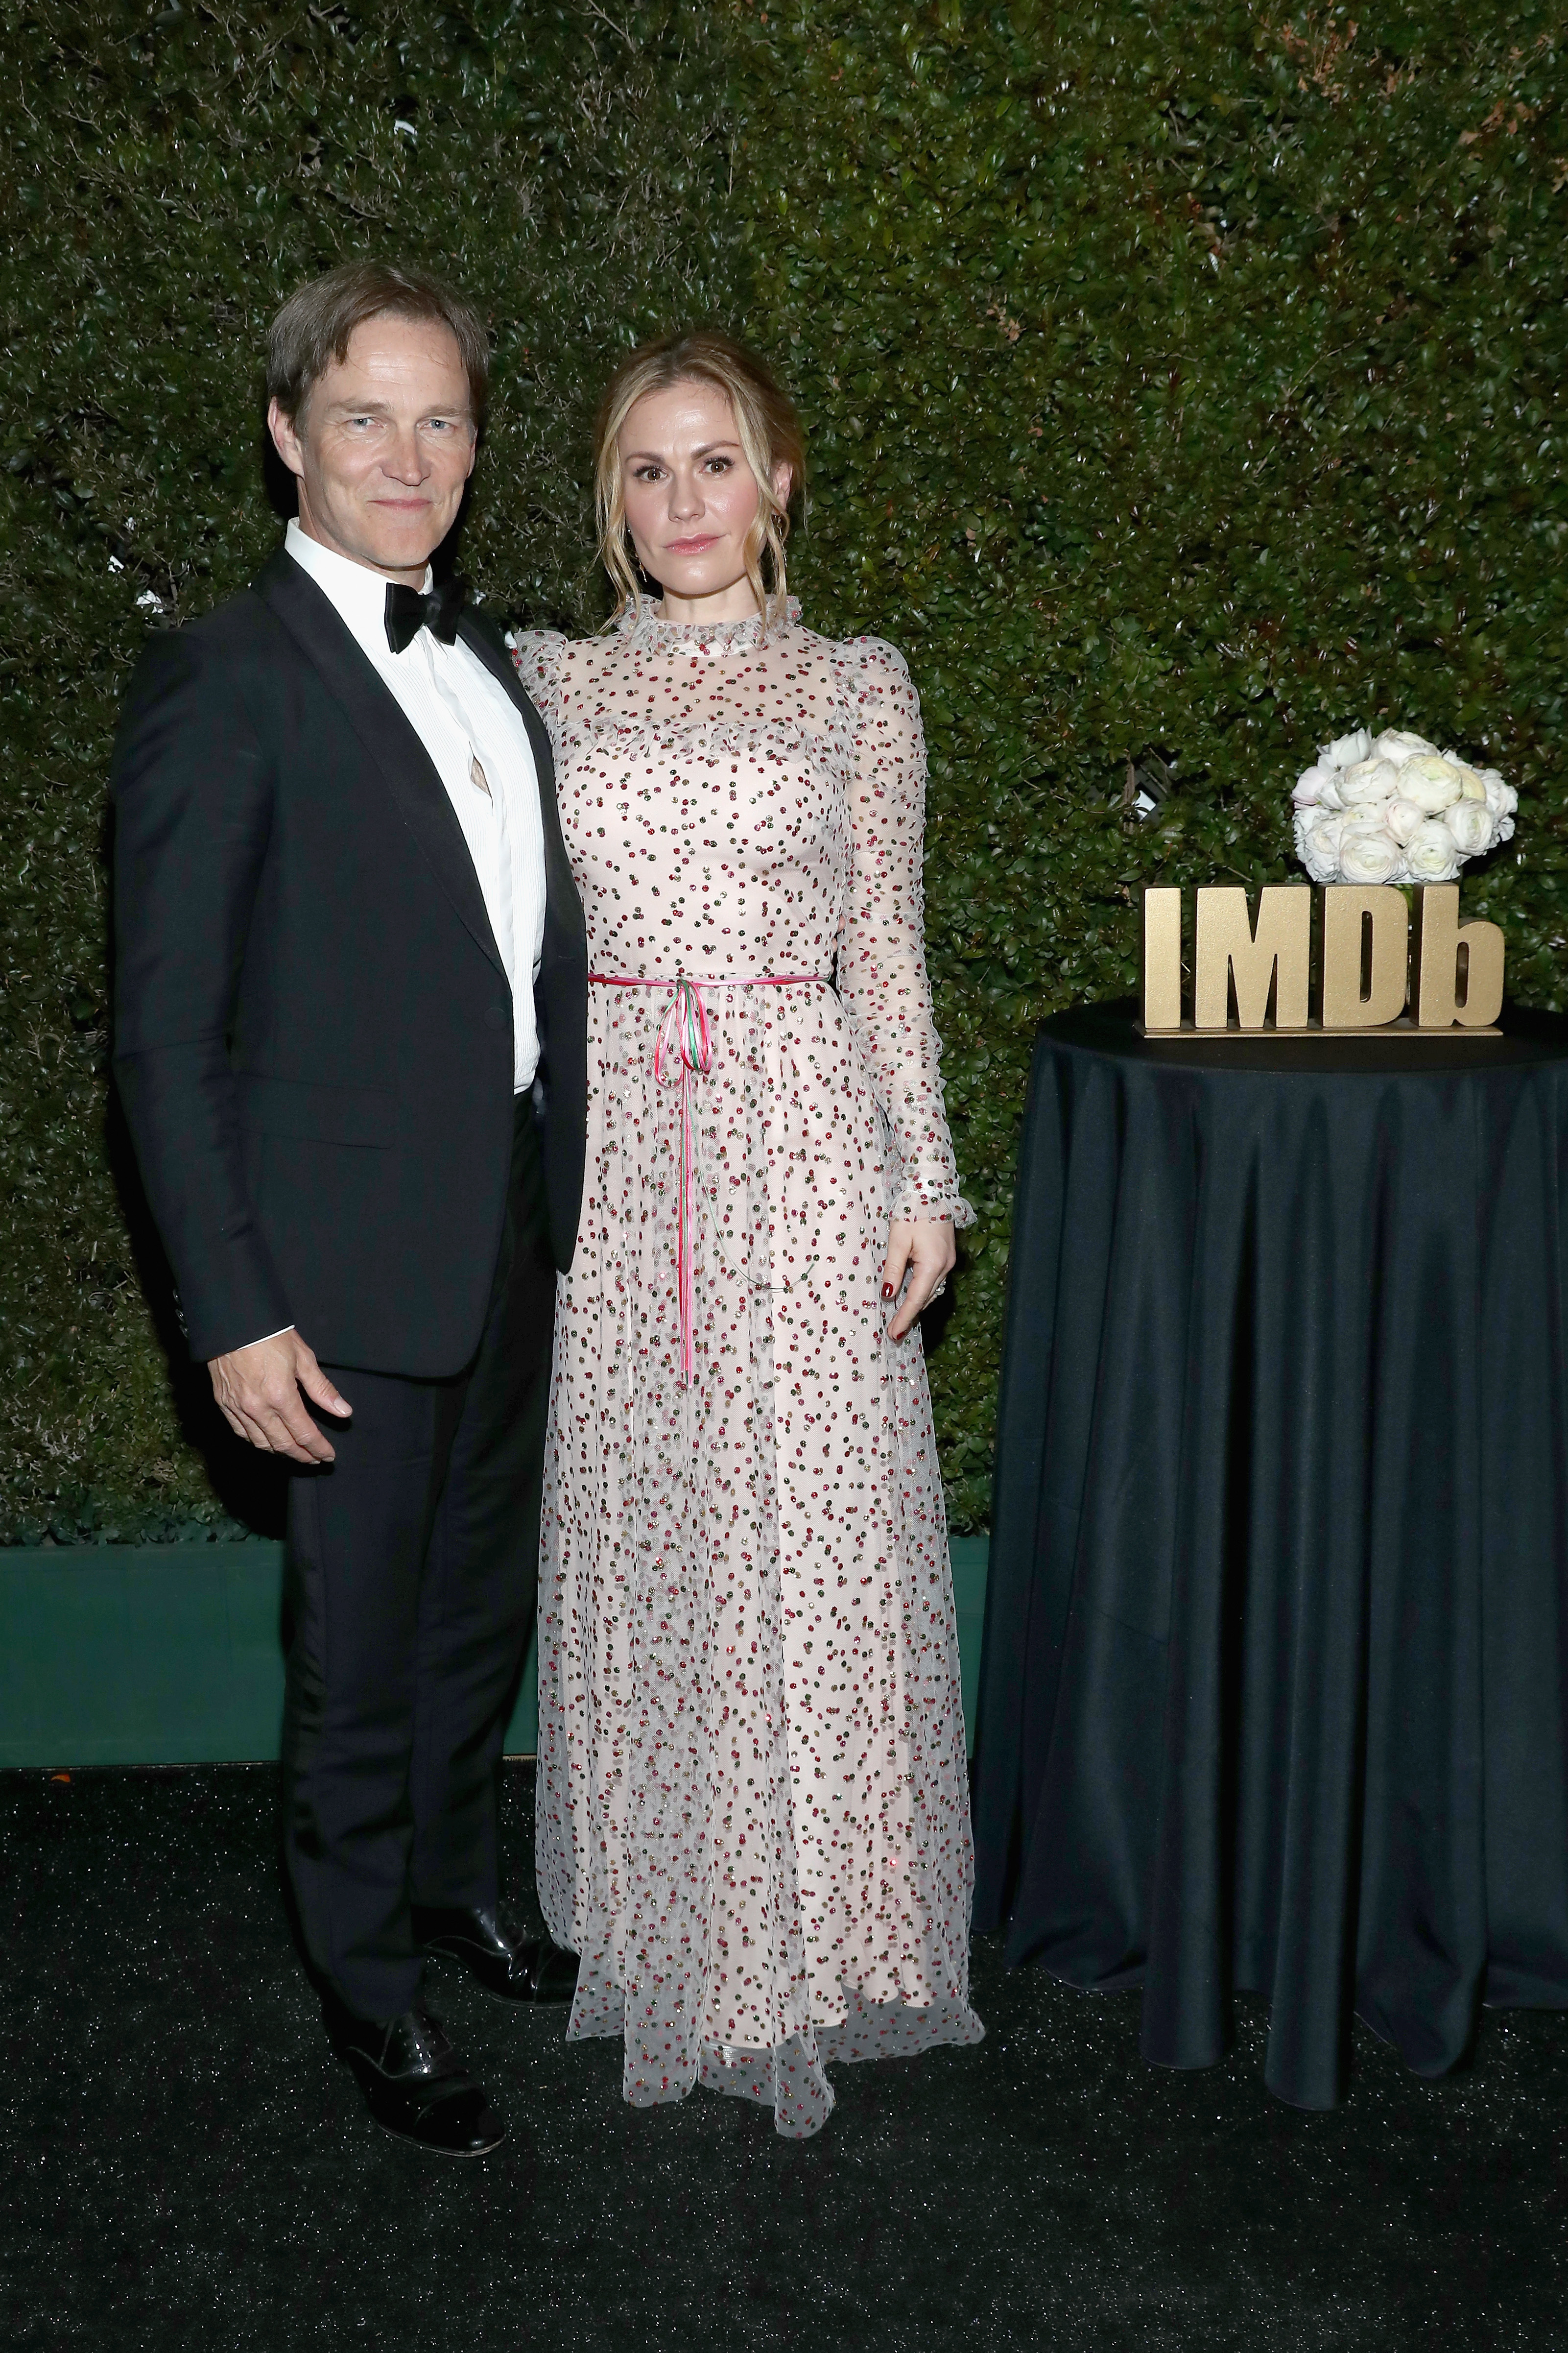 Stephen Moyer and Anna Paquin attend IMDb LIVE at the Elton John AIDS Foundation Academy Awards Viewing Party in West Hollywood on Feb. 24, 2019.